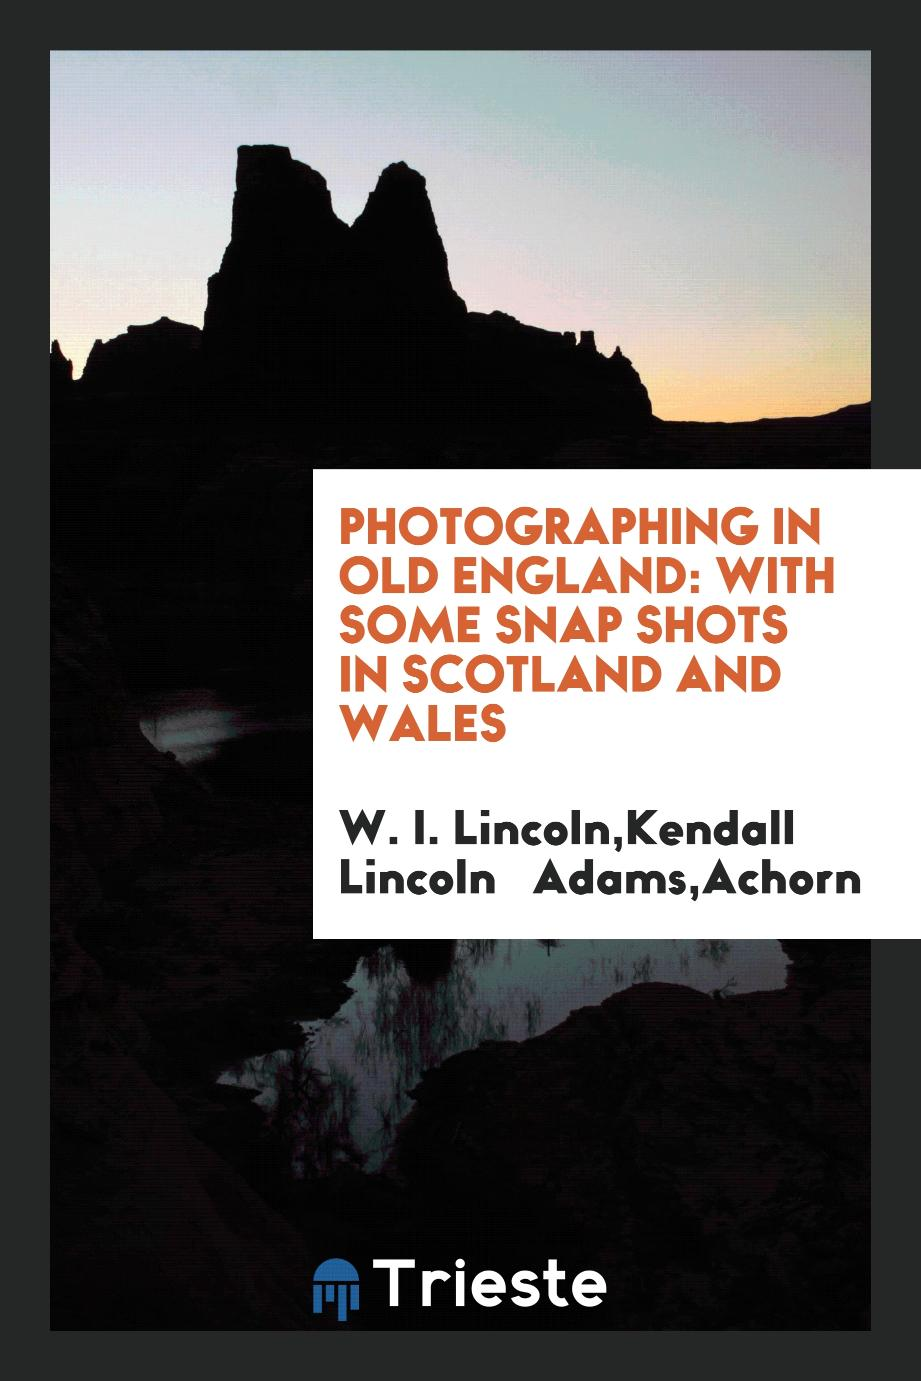 Photographing in Old England: With Some Snap Shots in Scotland and Wales